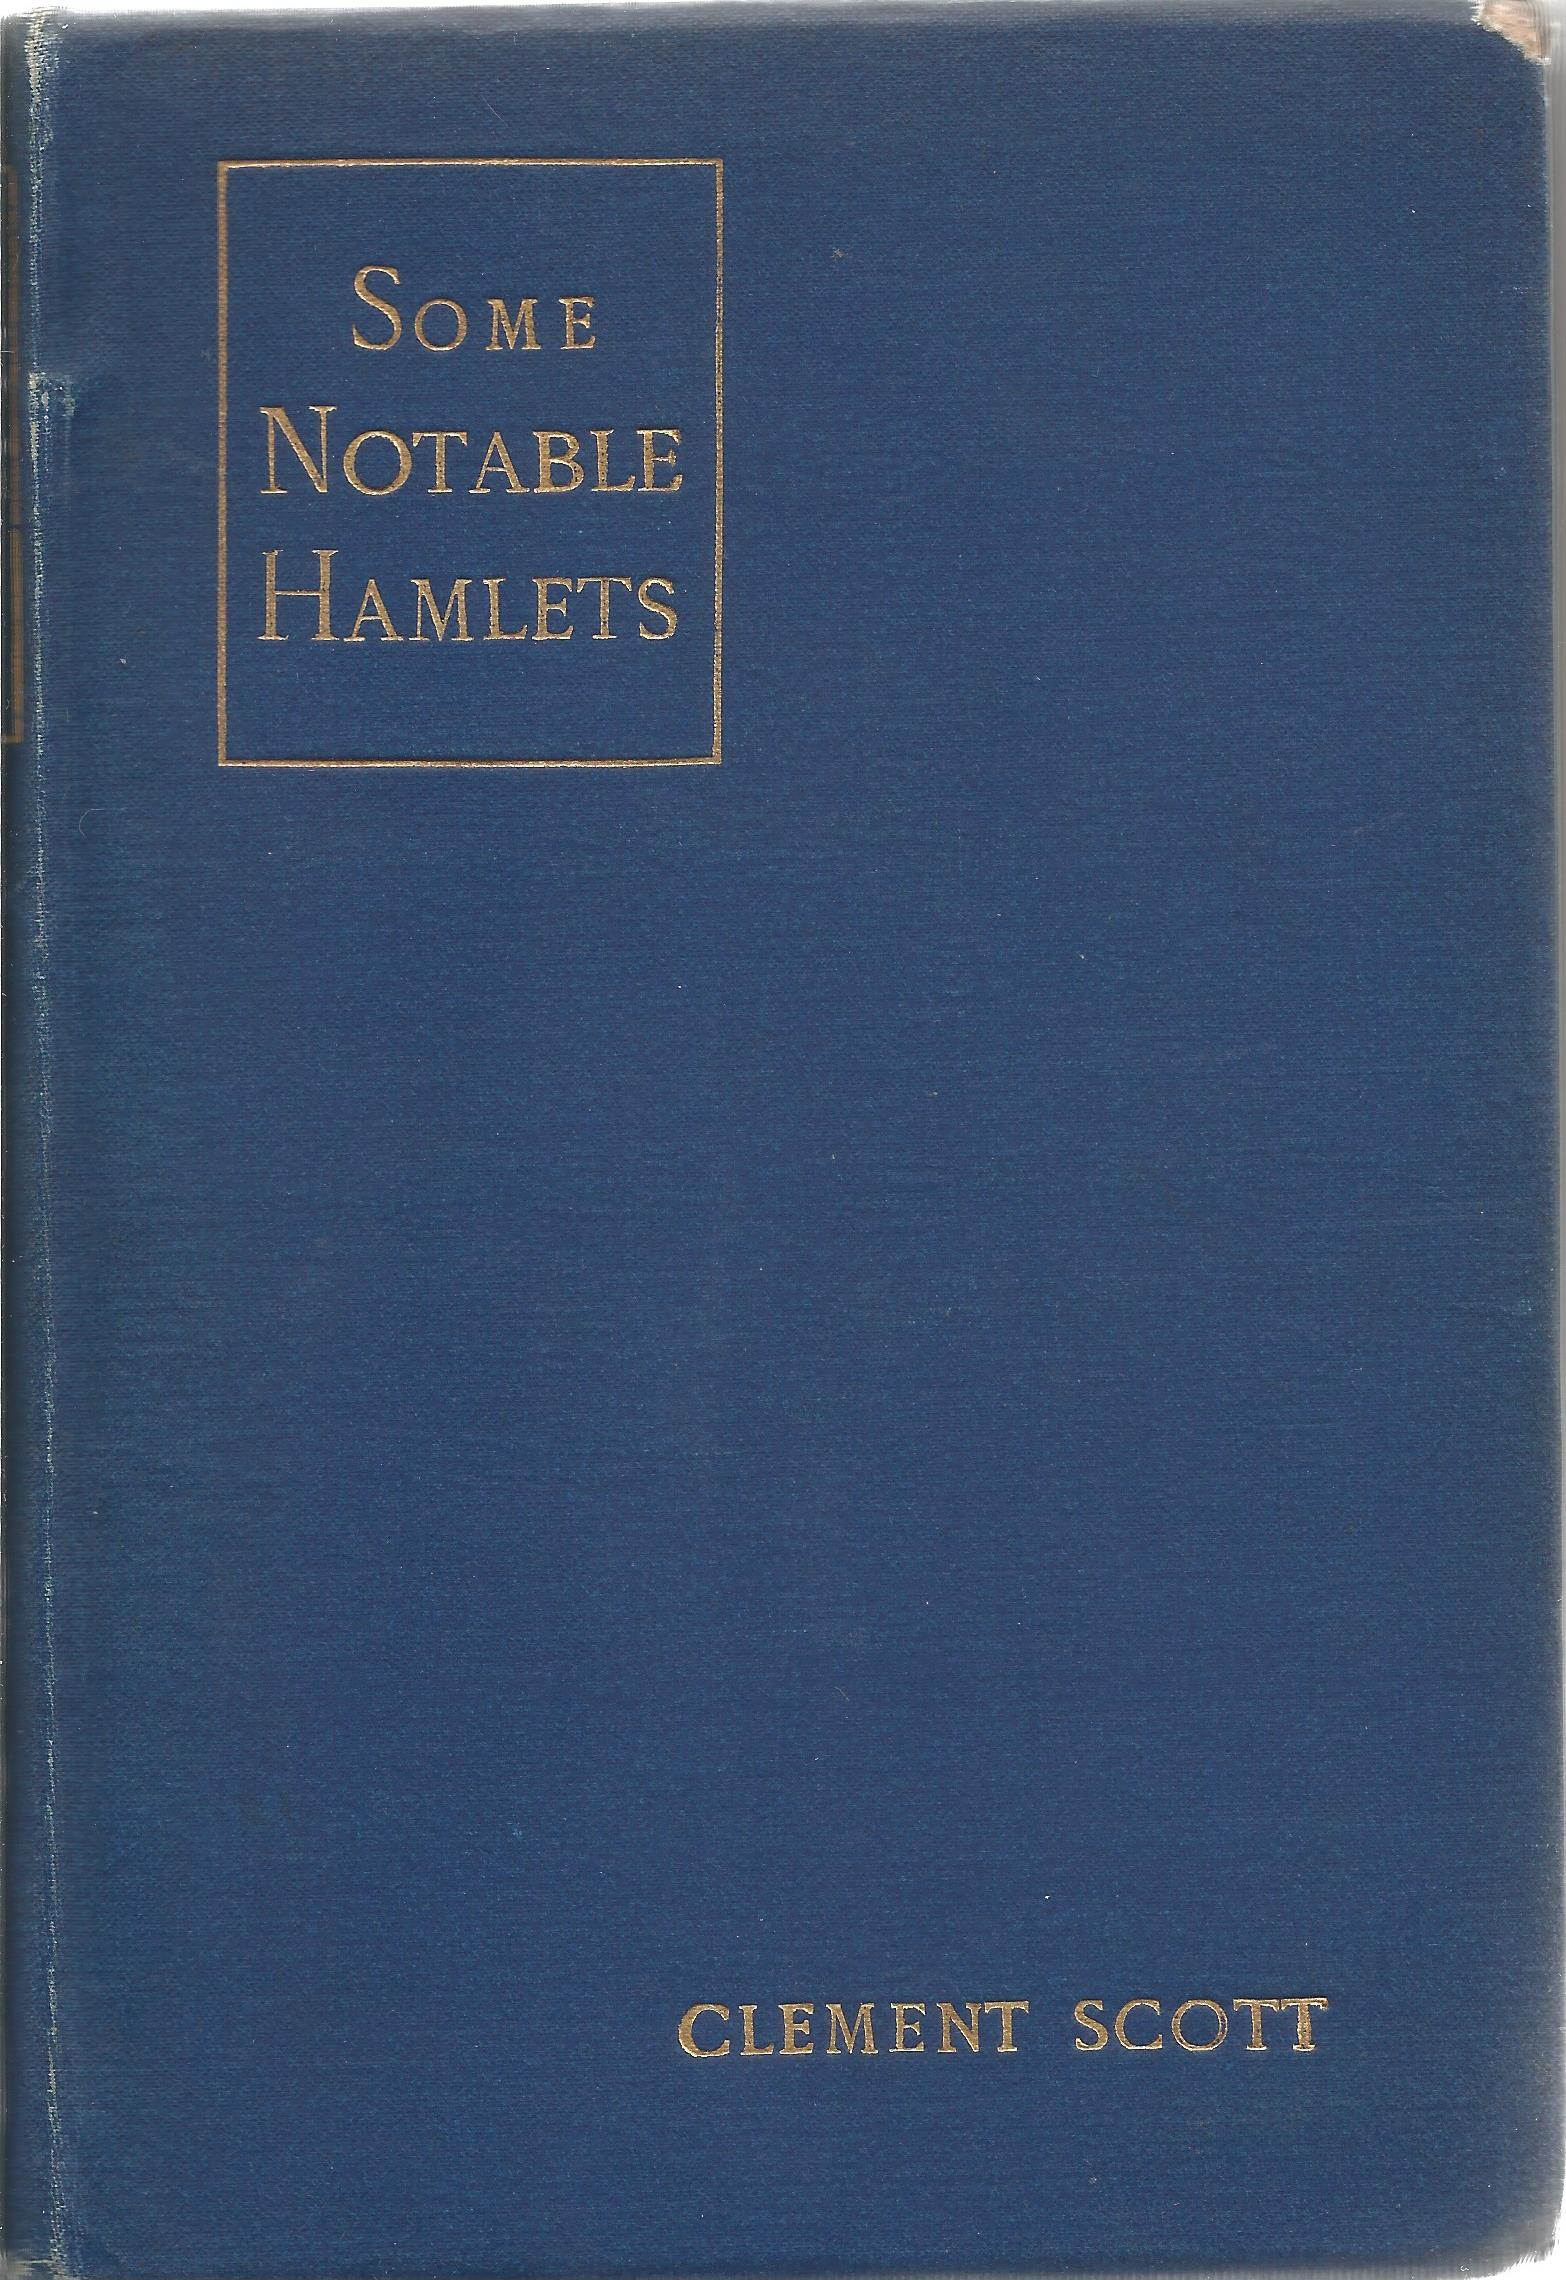 Clement Scott Hardback Book Some Notable Hamlets signed by the Author on the First Page and dated